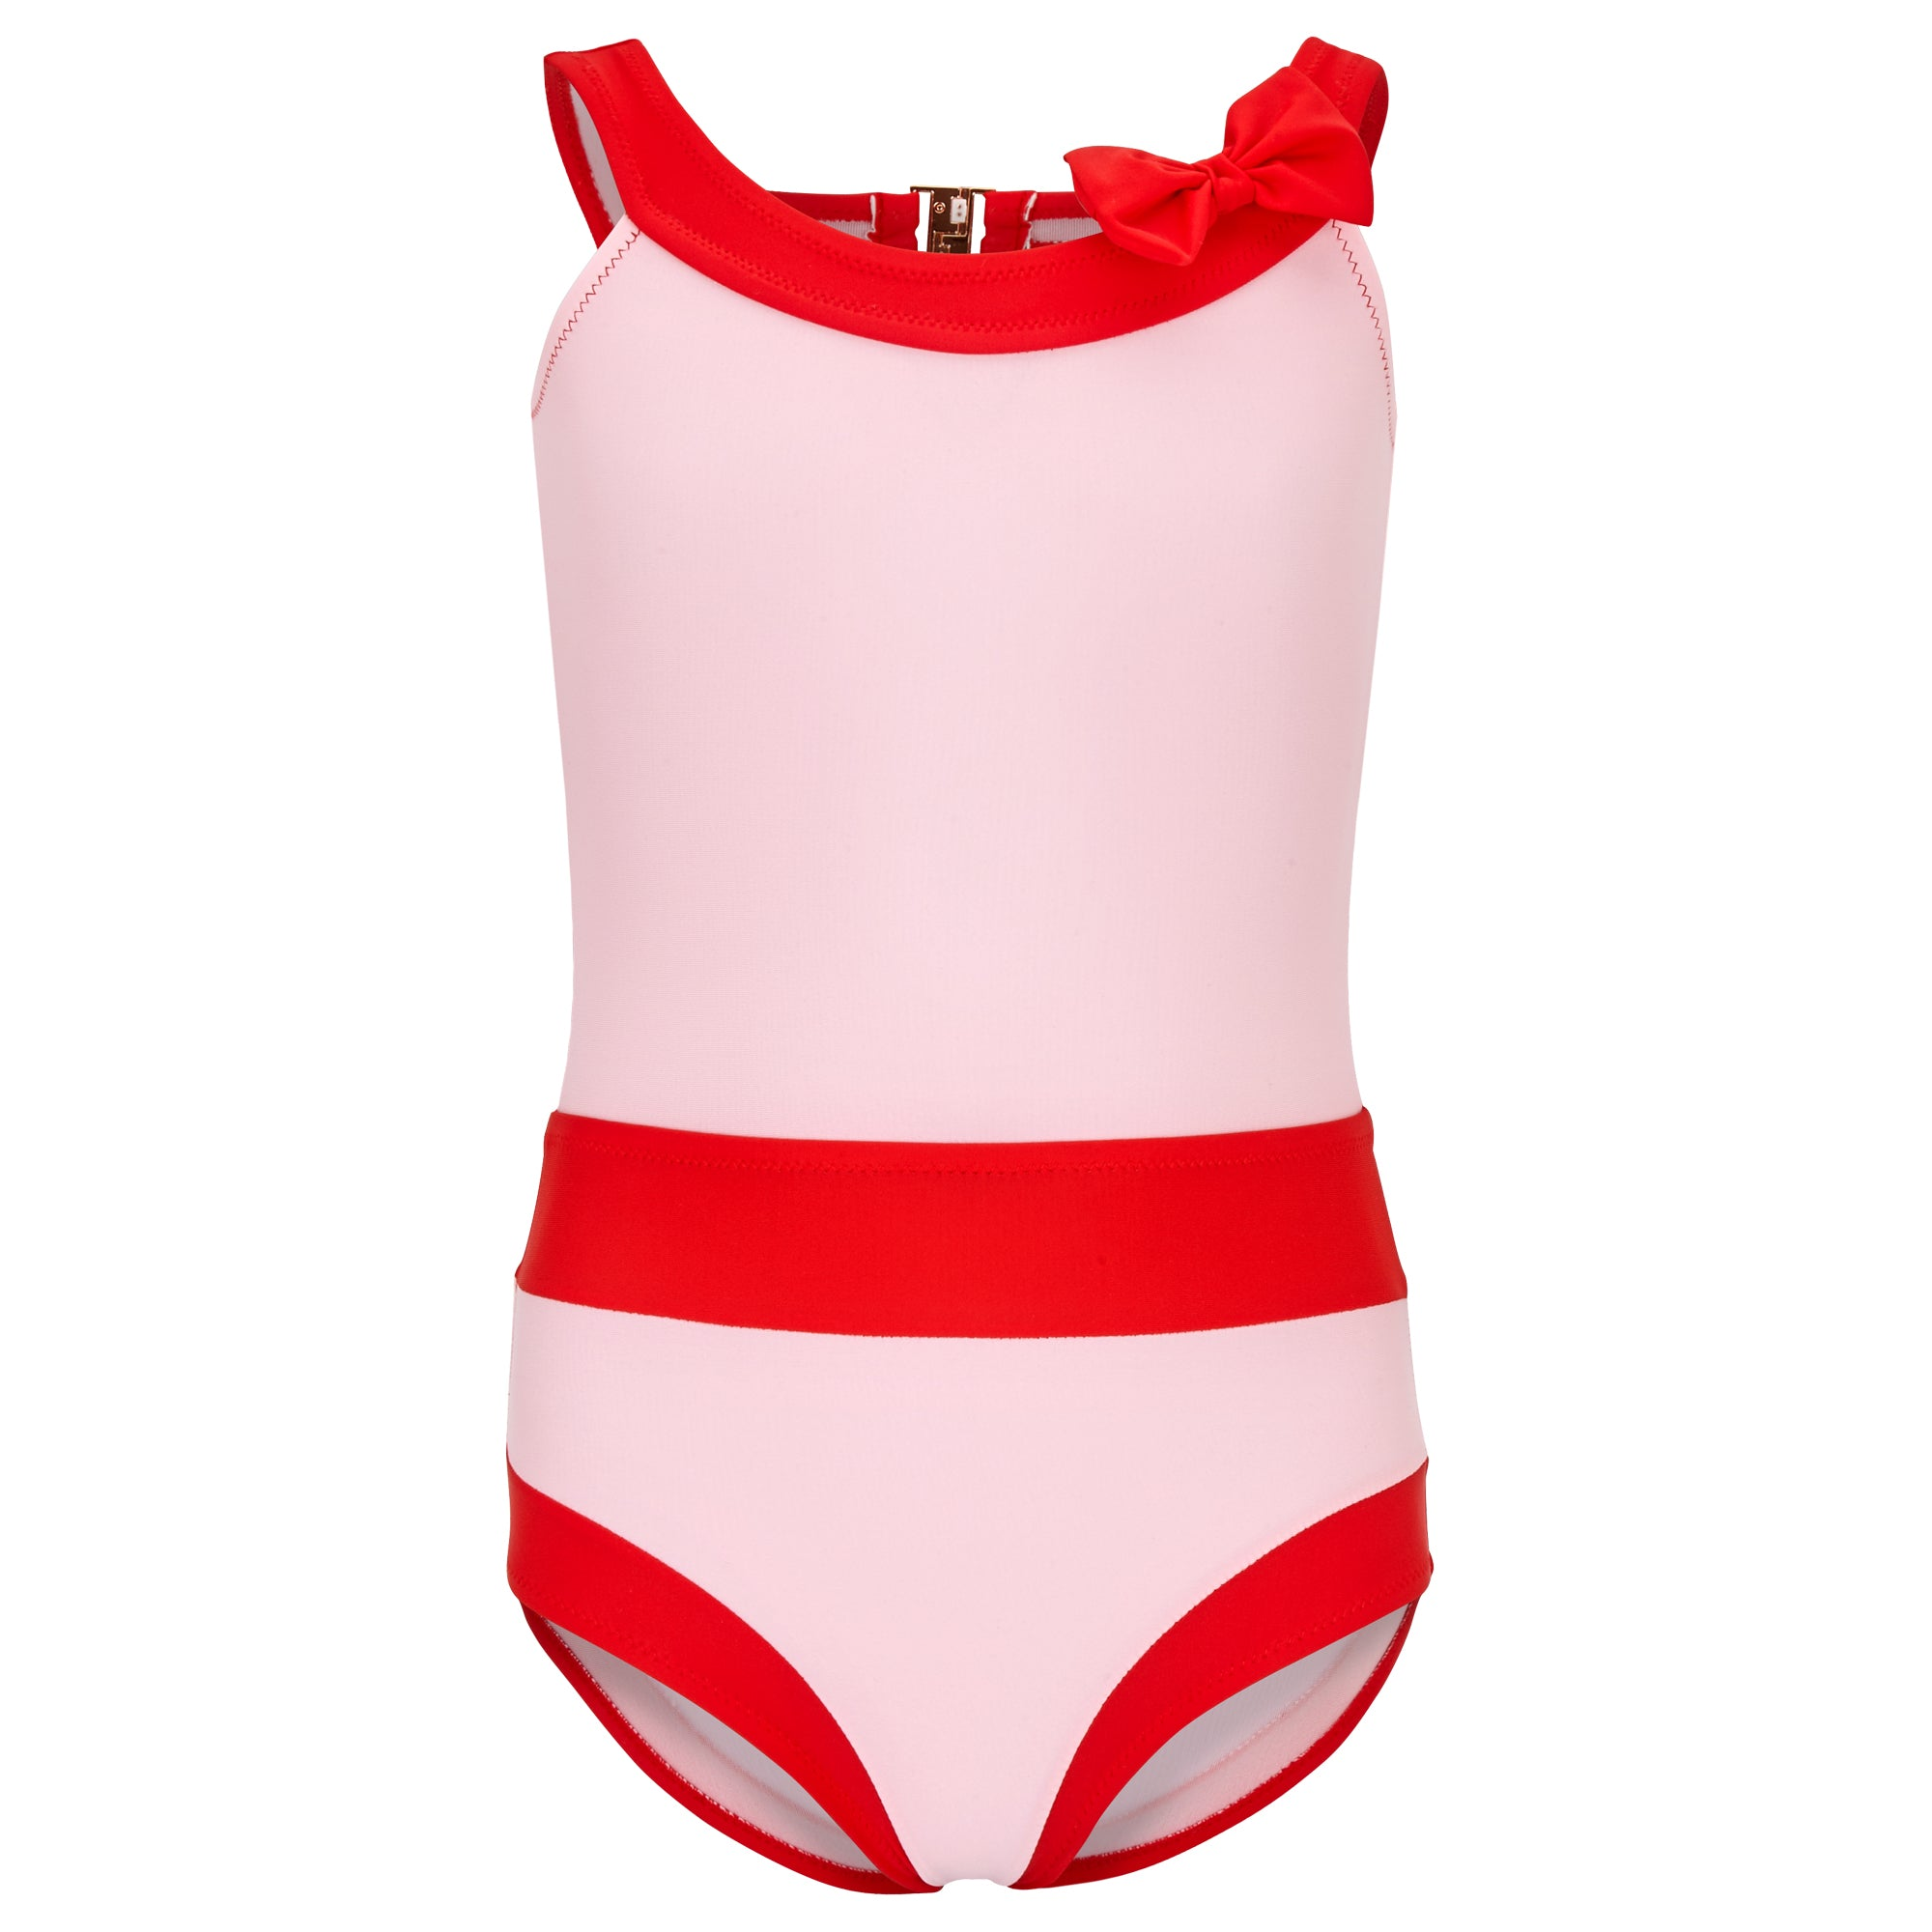 HONOLULU SWIMSUIT GIRLS - BABYPINK/RED